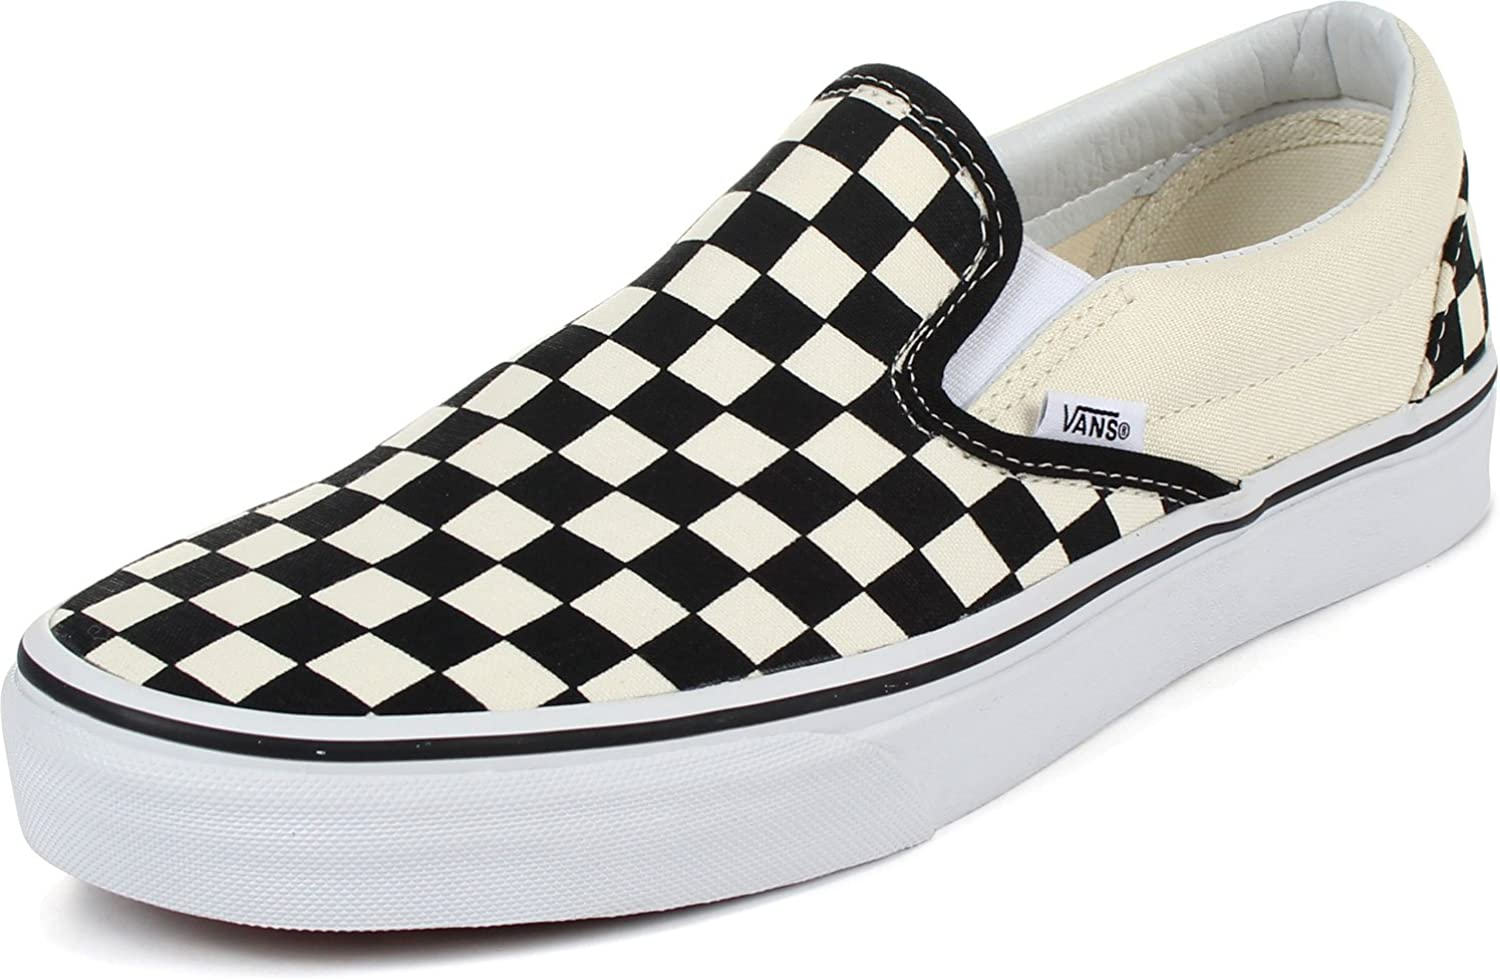 Vans - Unisex Adult Classic Slip-On Shoes in Black/White Checkered, 14 D(M)  US Mens, Black/White Checkered